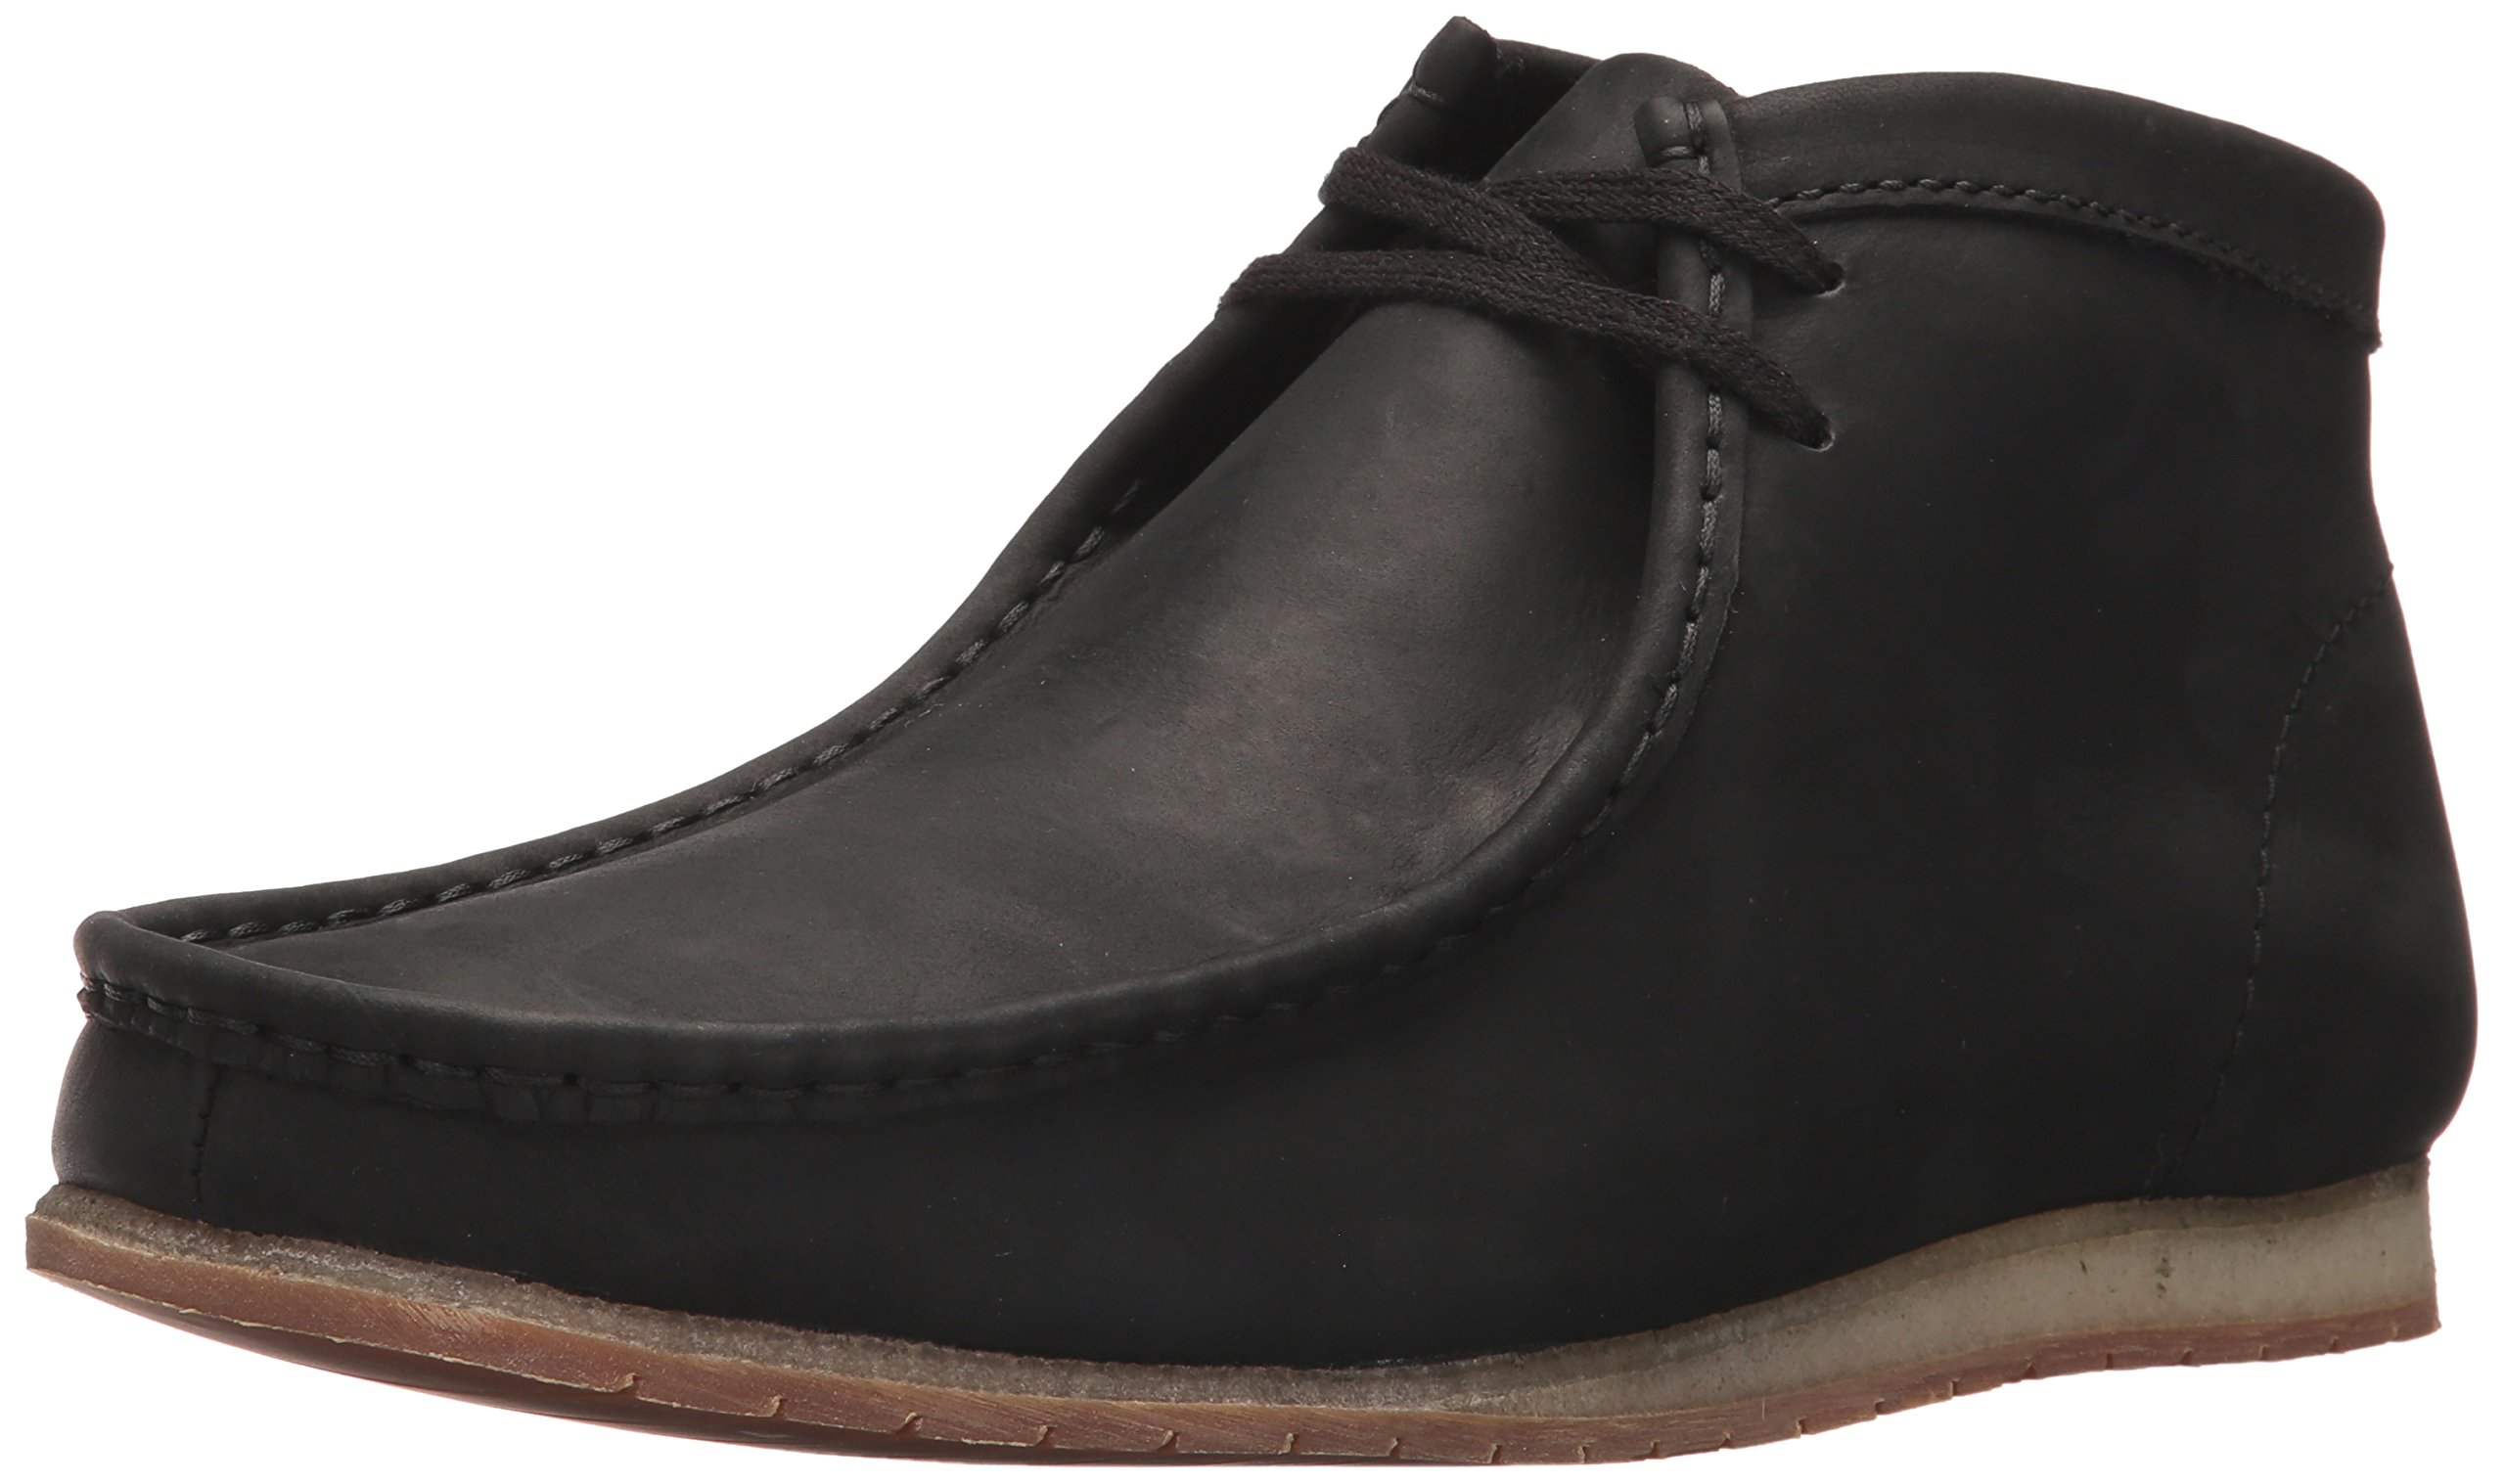 CLARKS Men's Wallabee Step Boot Chukka Boot, Black Leather, 9 M US